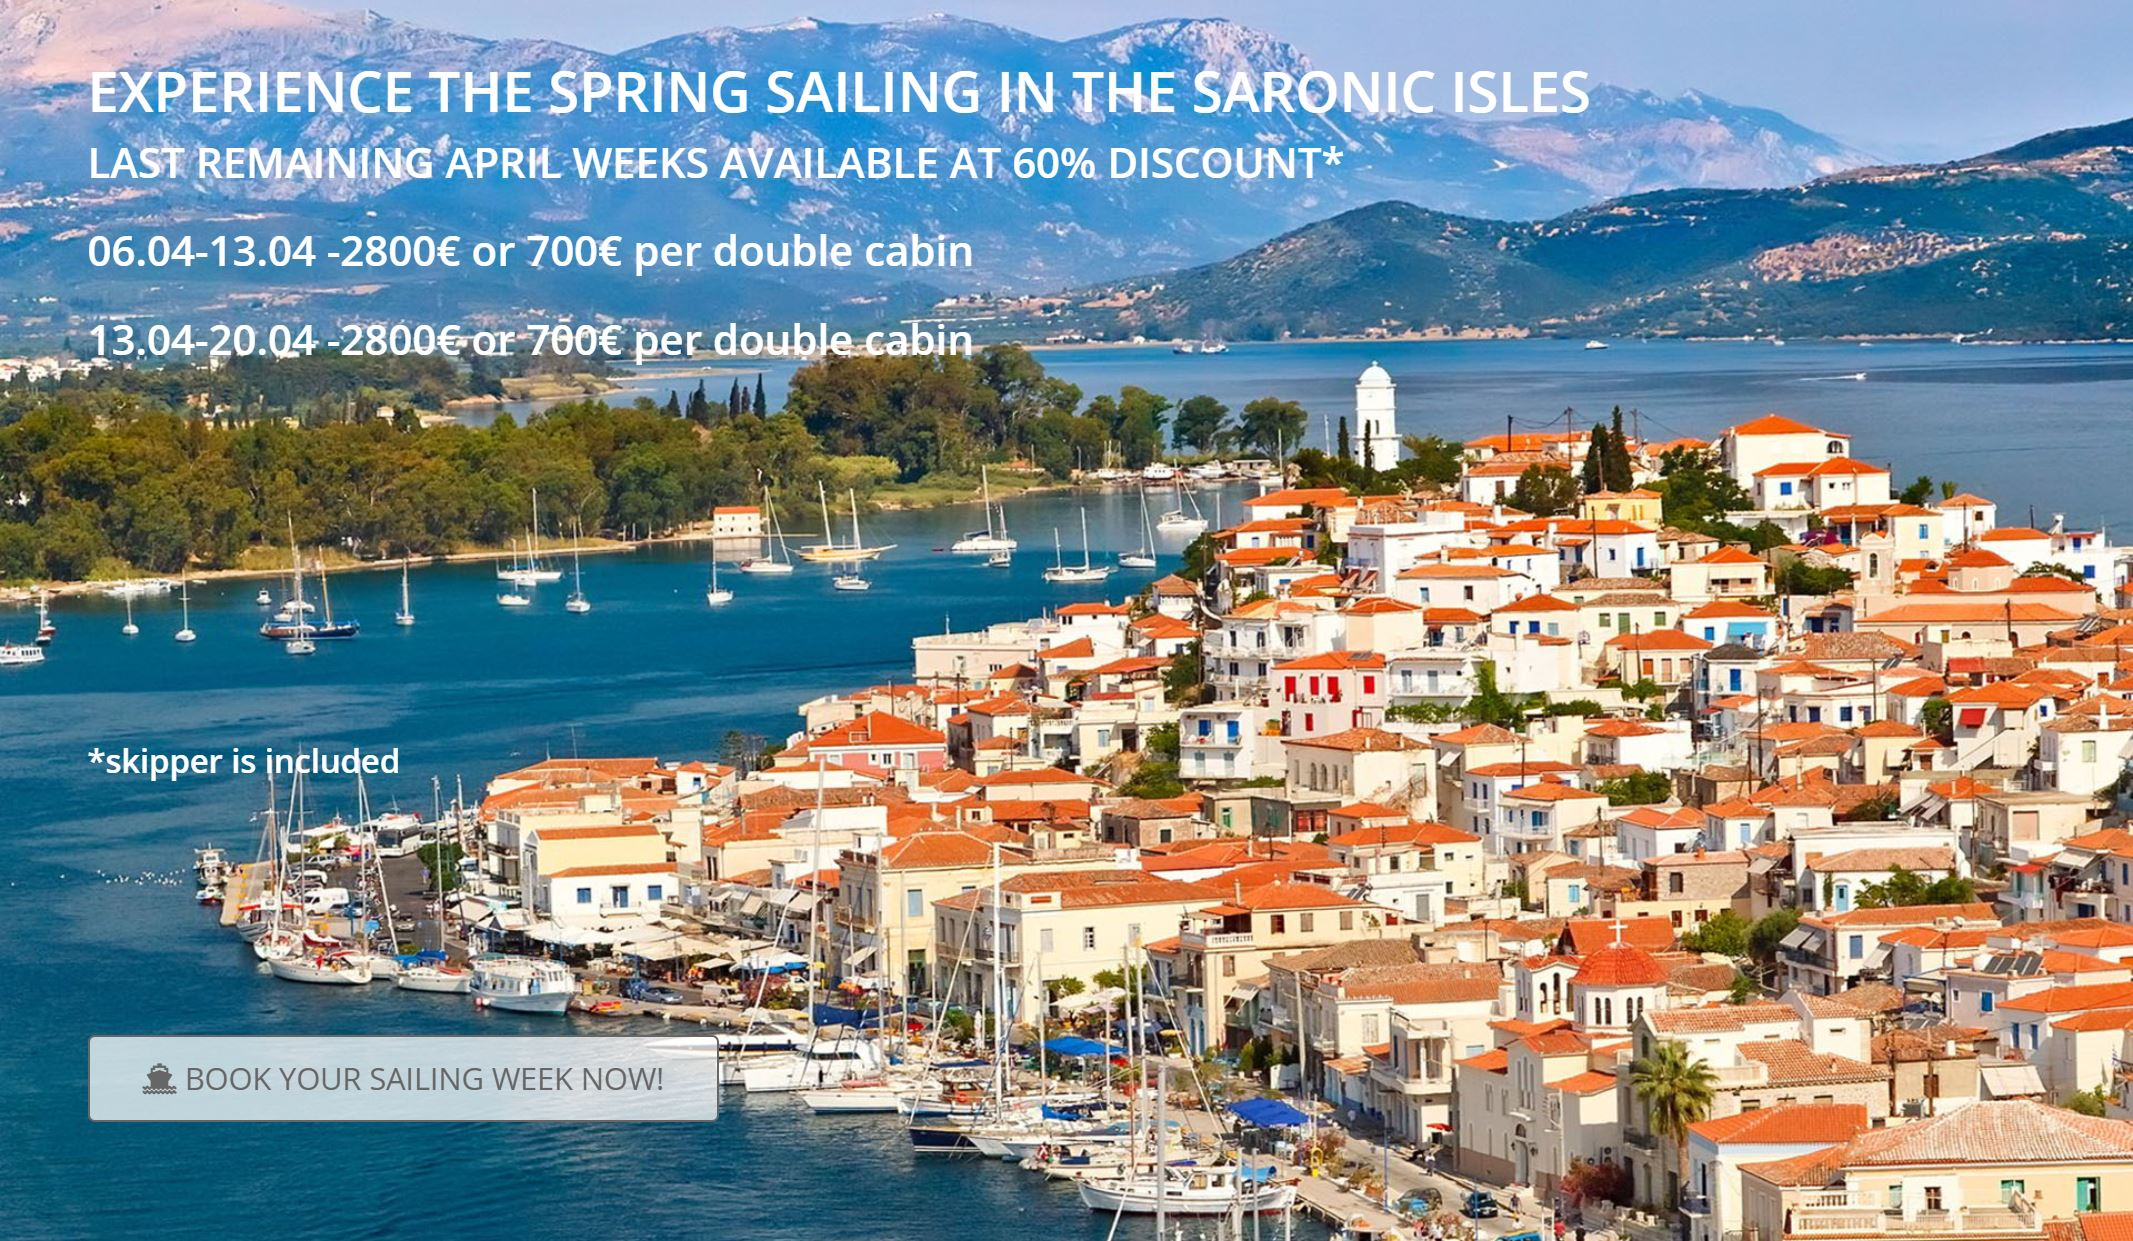 Experience the spring sailing in the Saronic Isles